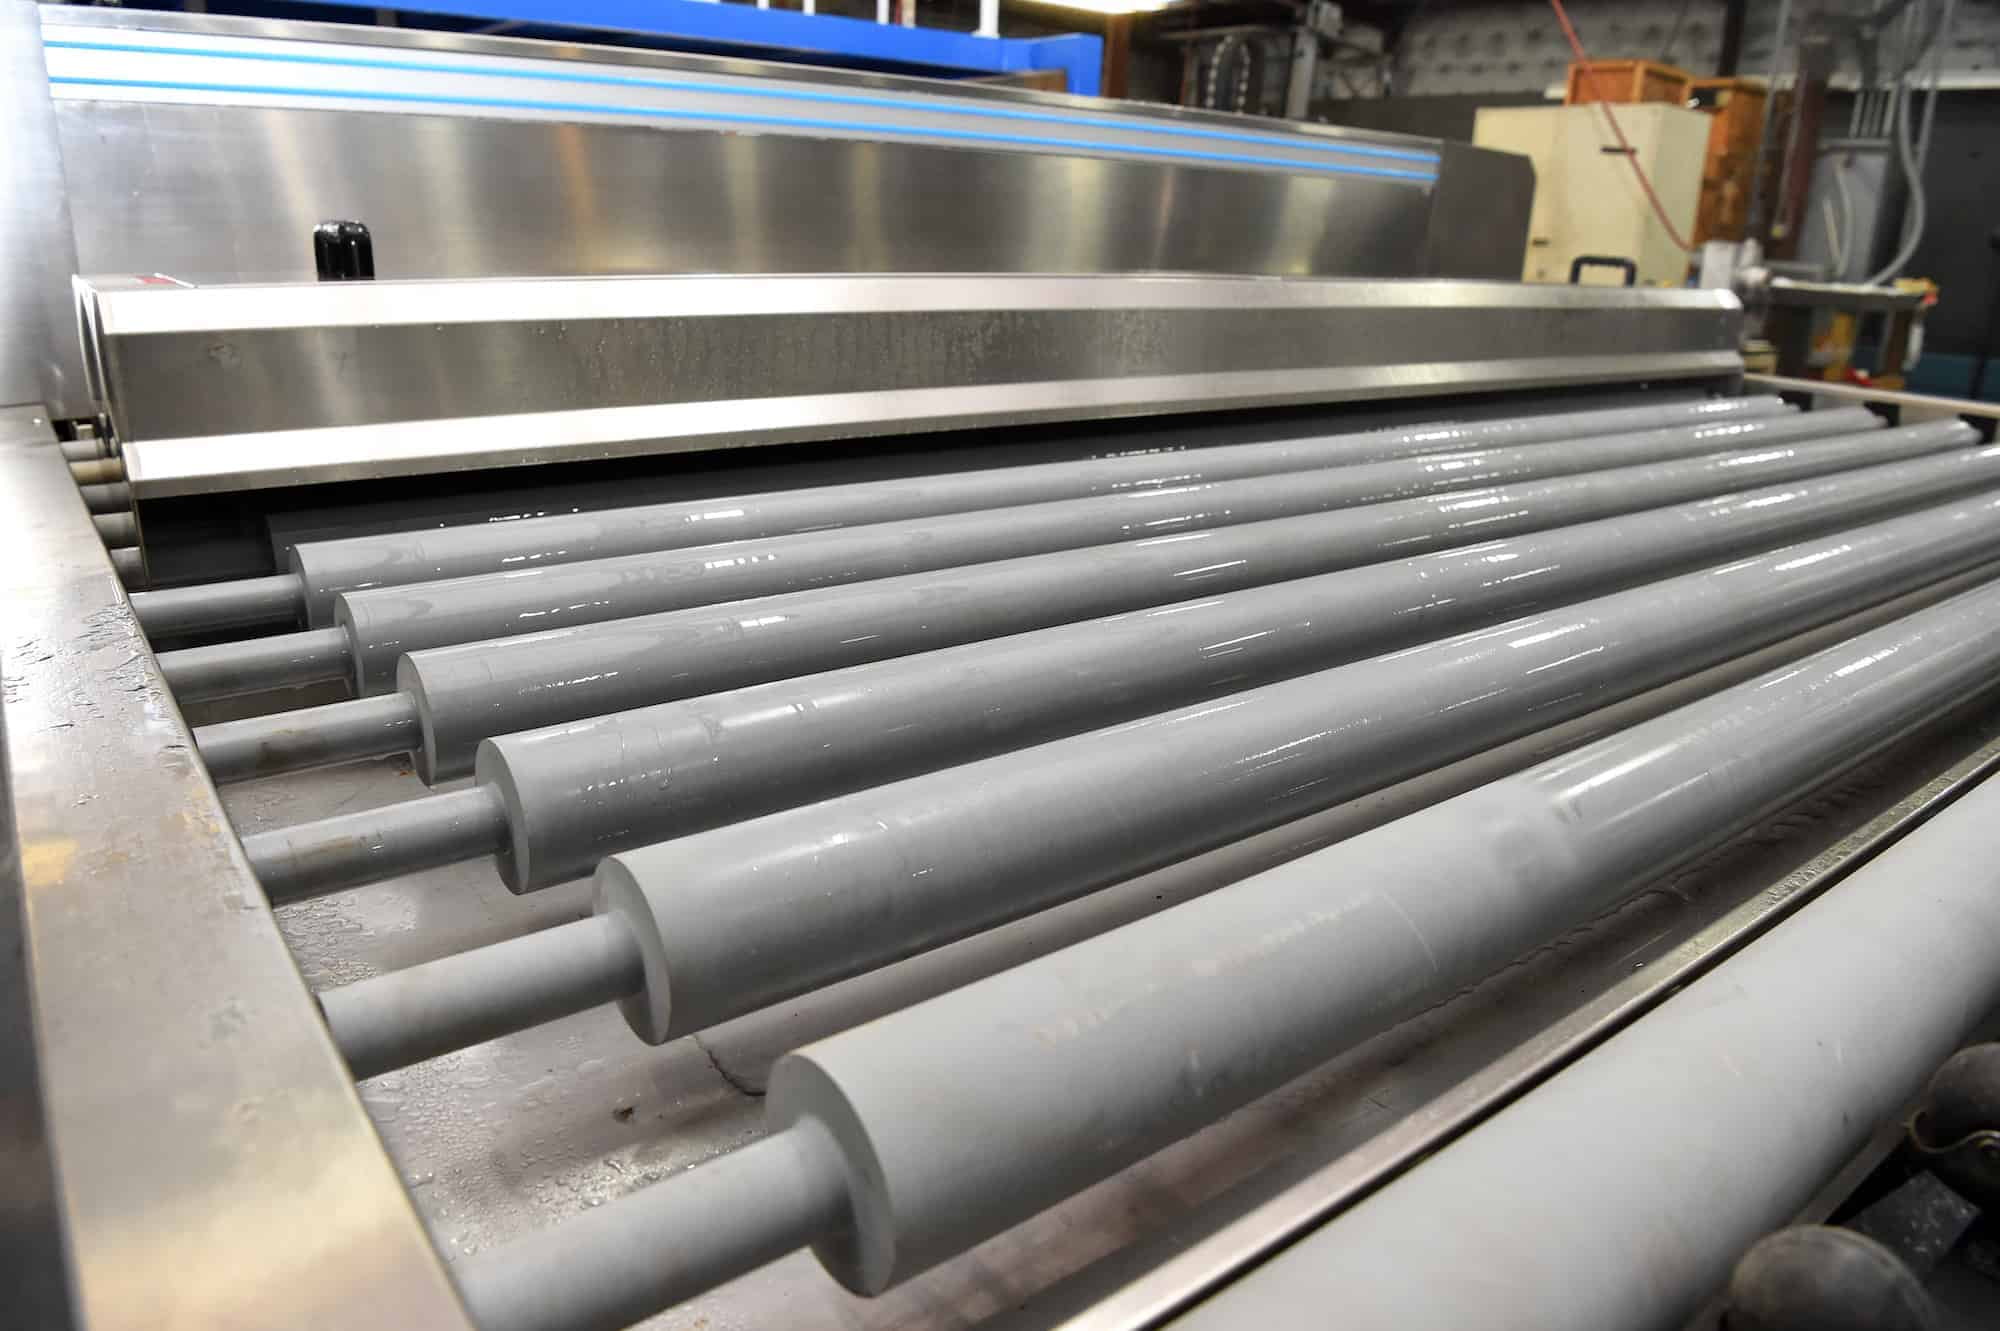 Horizontal Glass Washer | HHH Tempering Resources